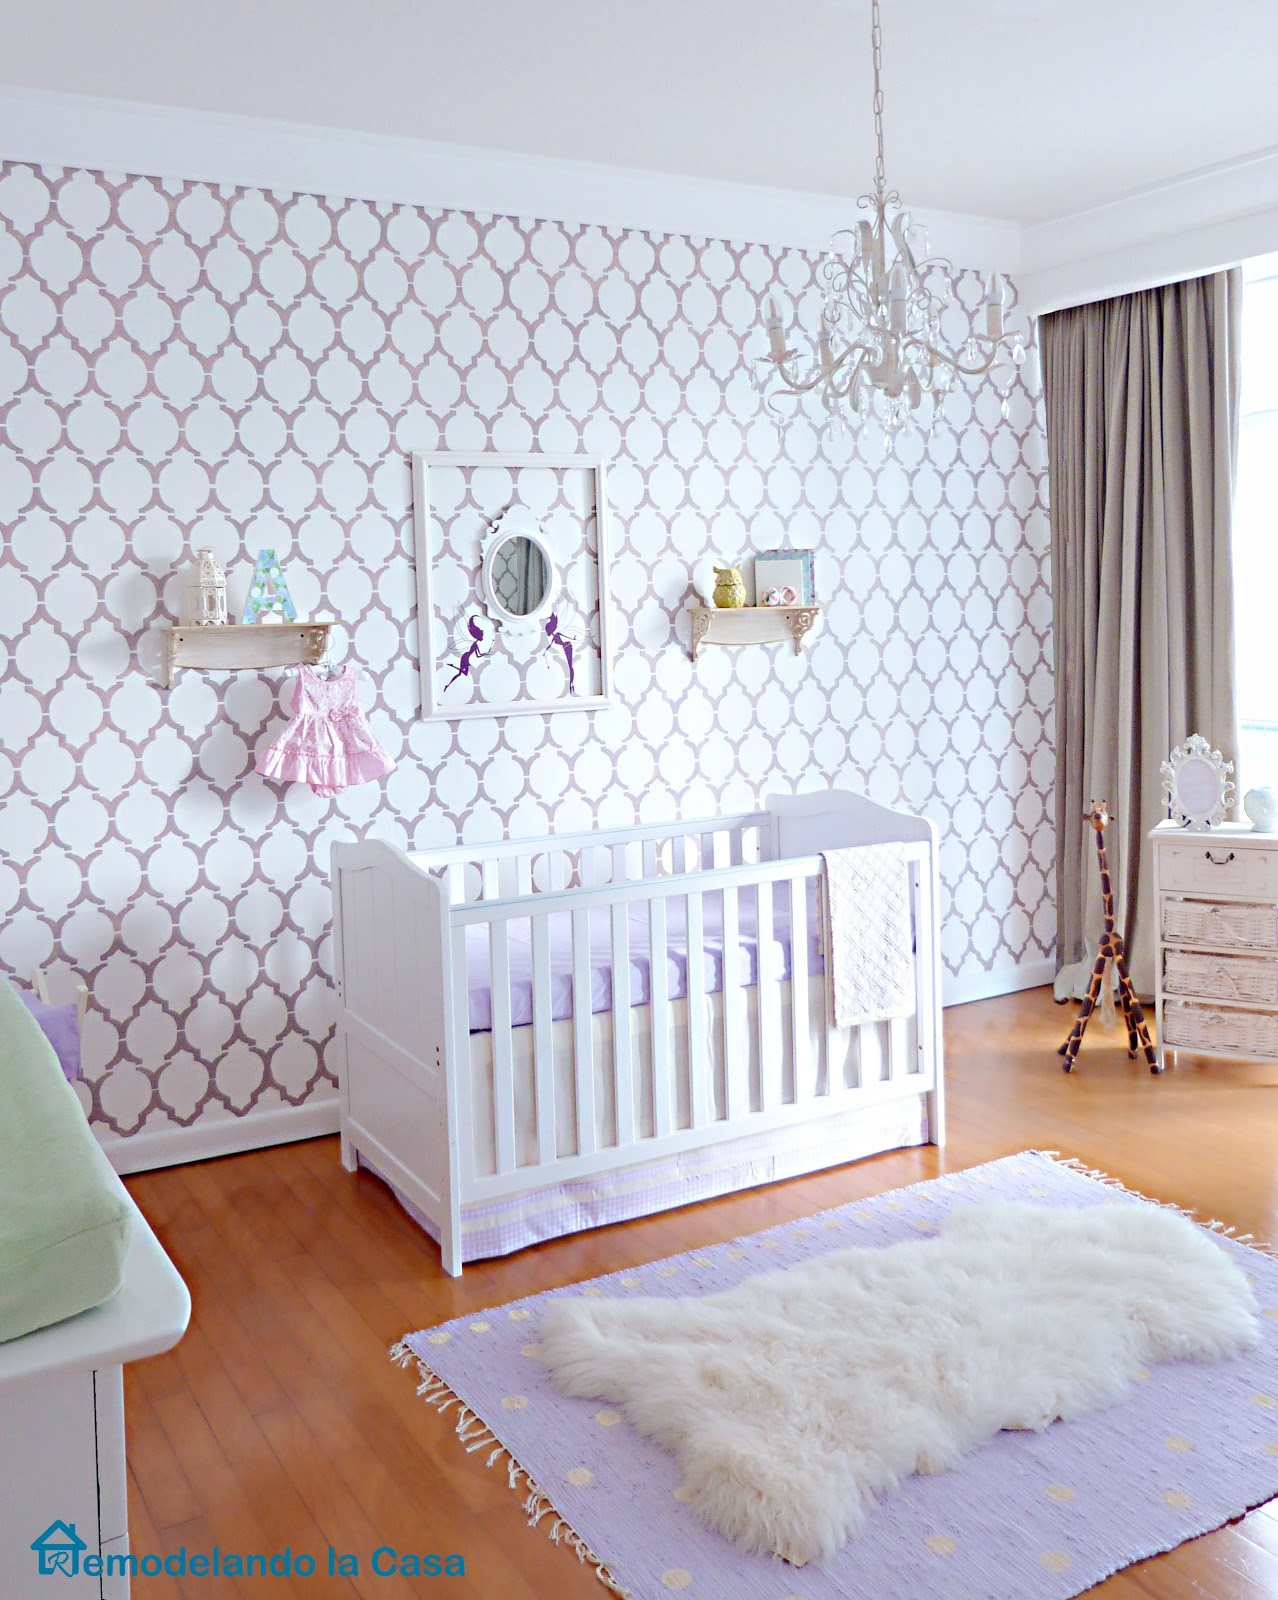 Textured stylish nursery room in lavender